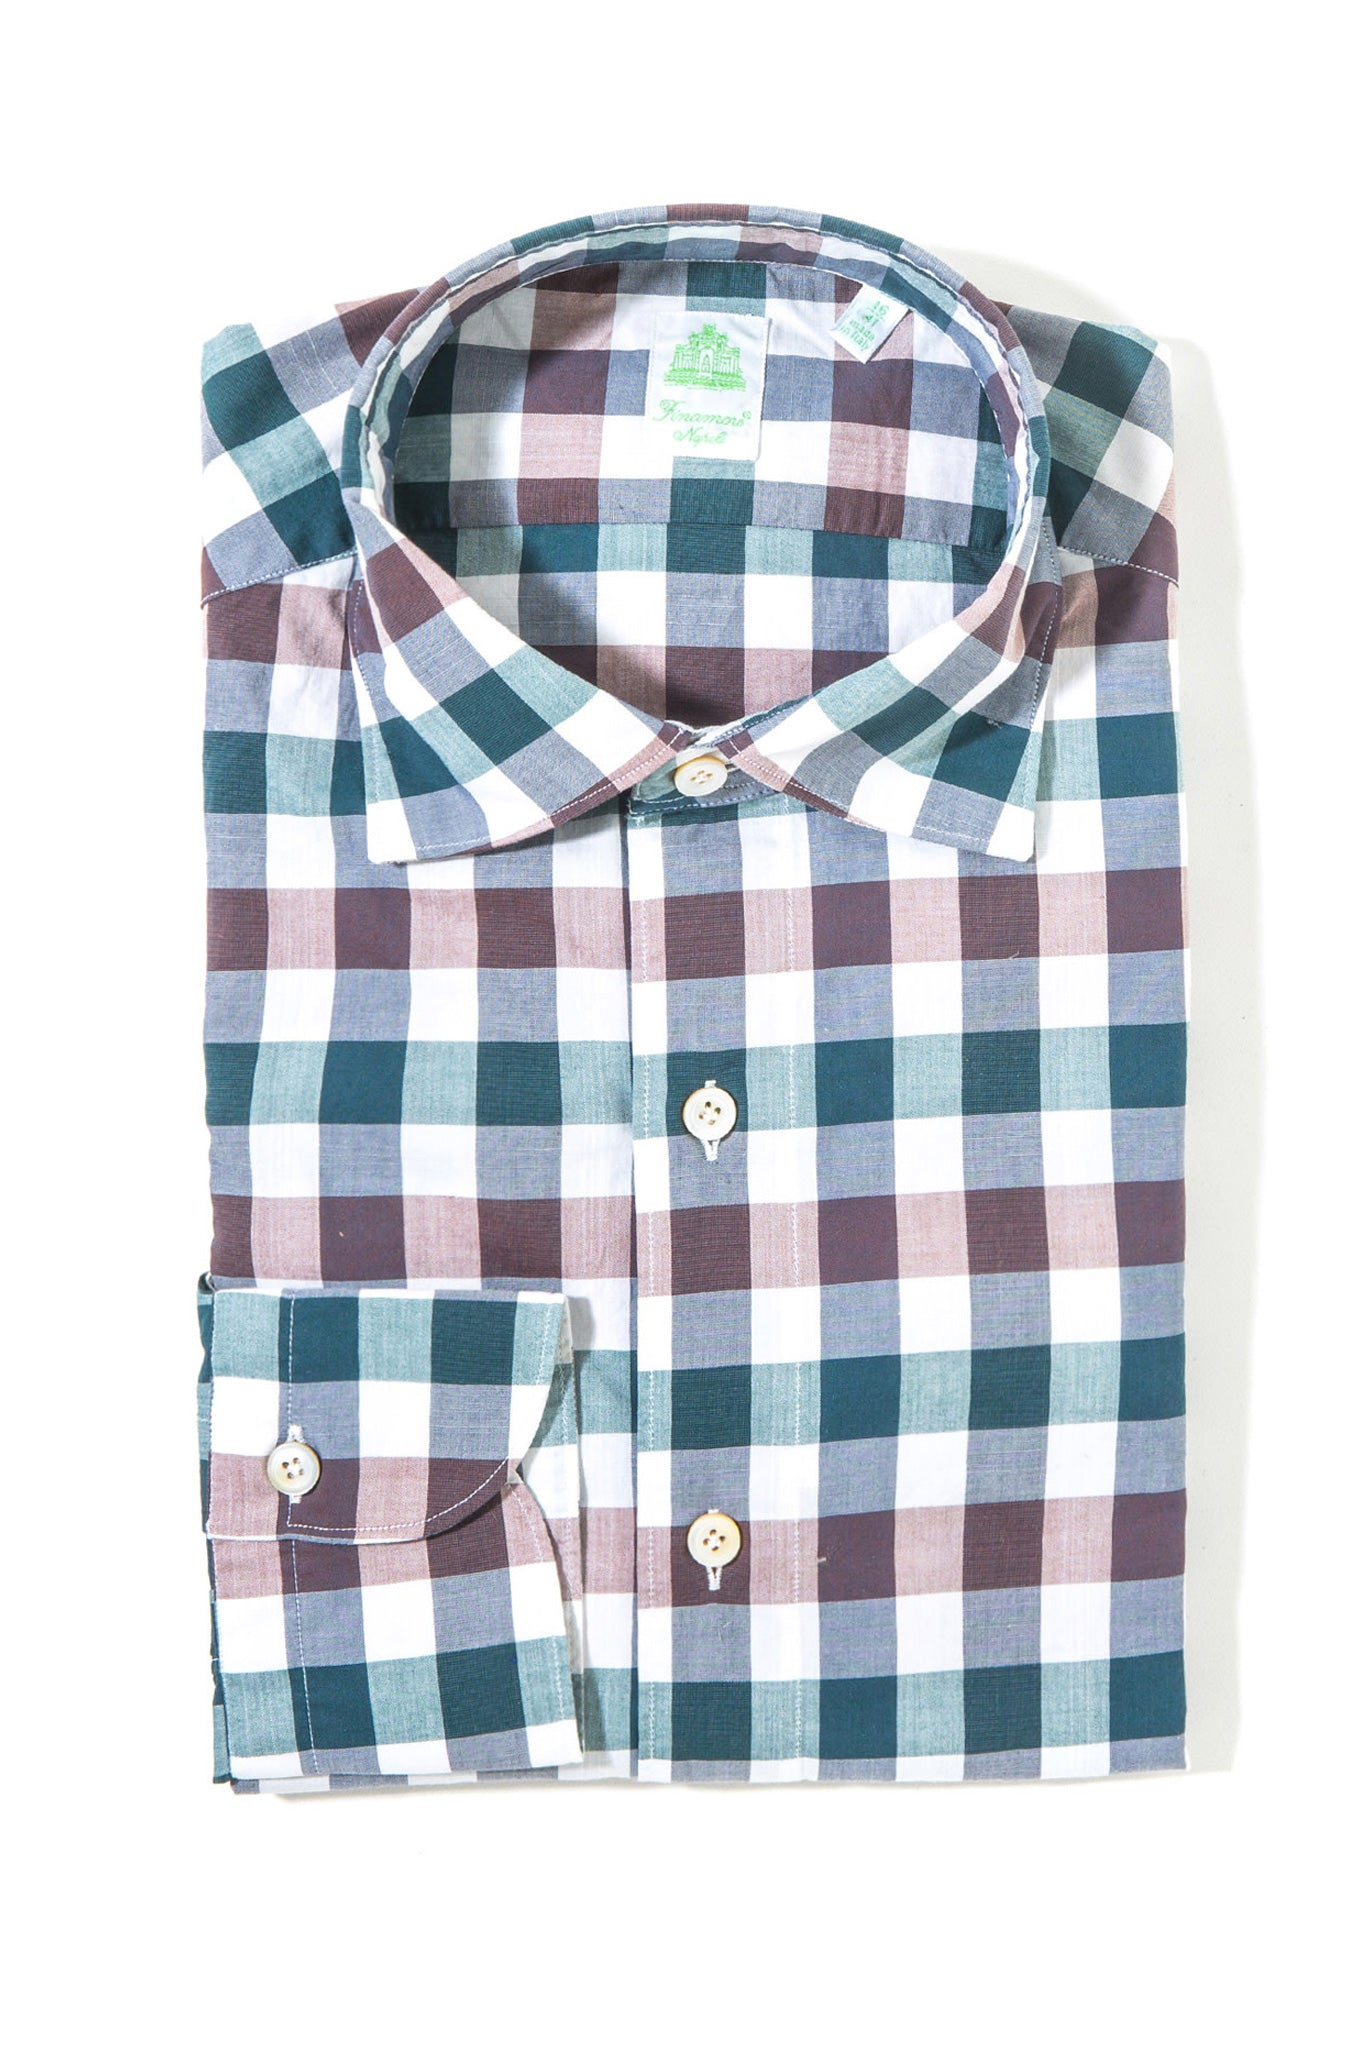 Finamore Giovanni Sport Shirt Green/Brown Plaid (3440637902941)